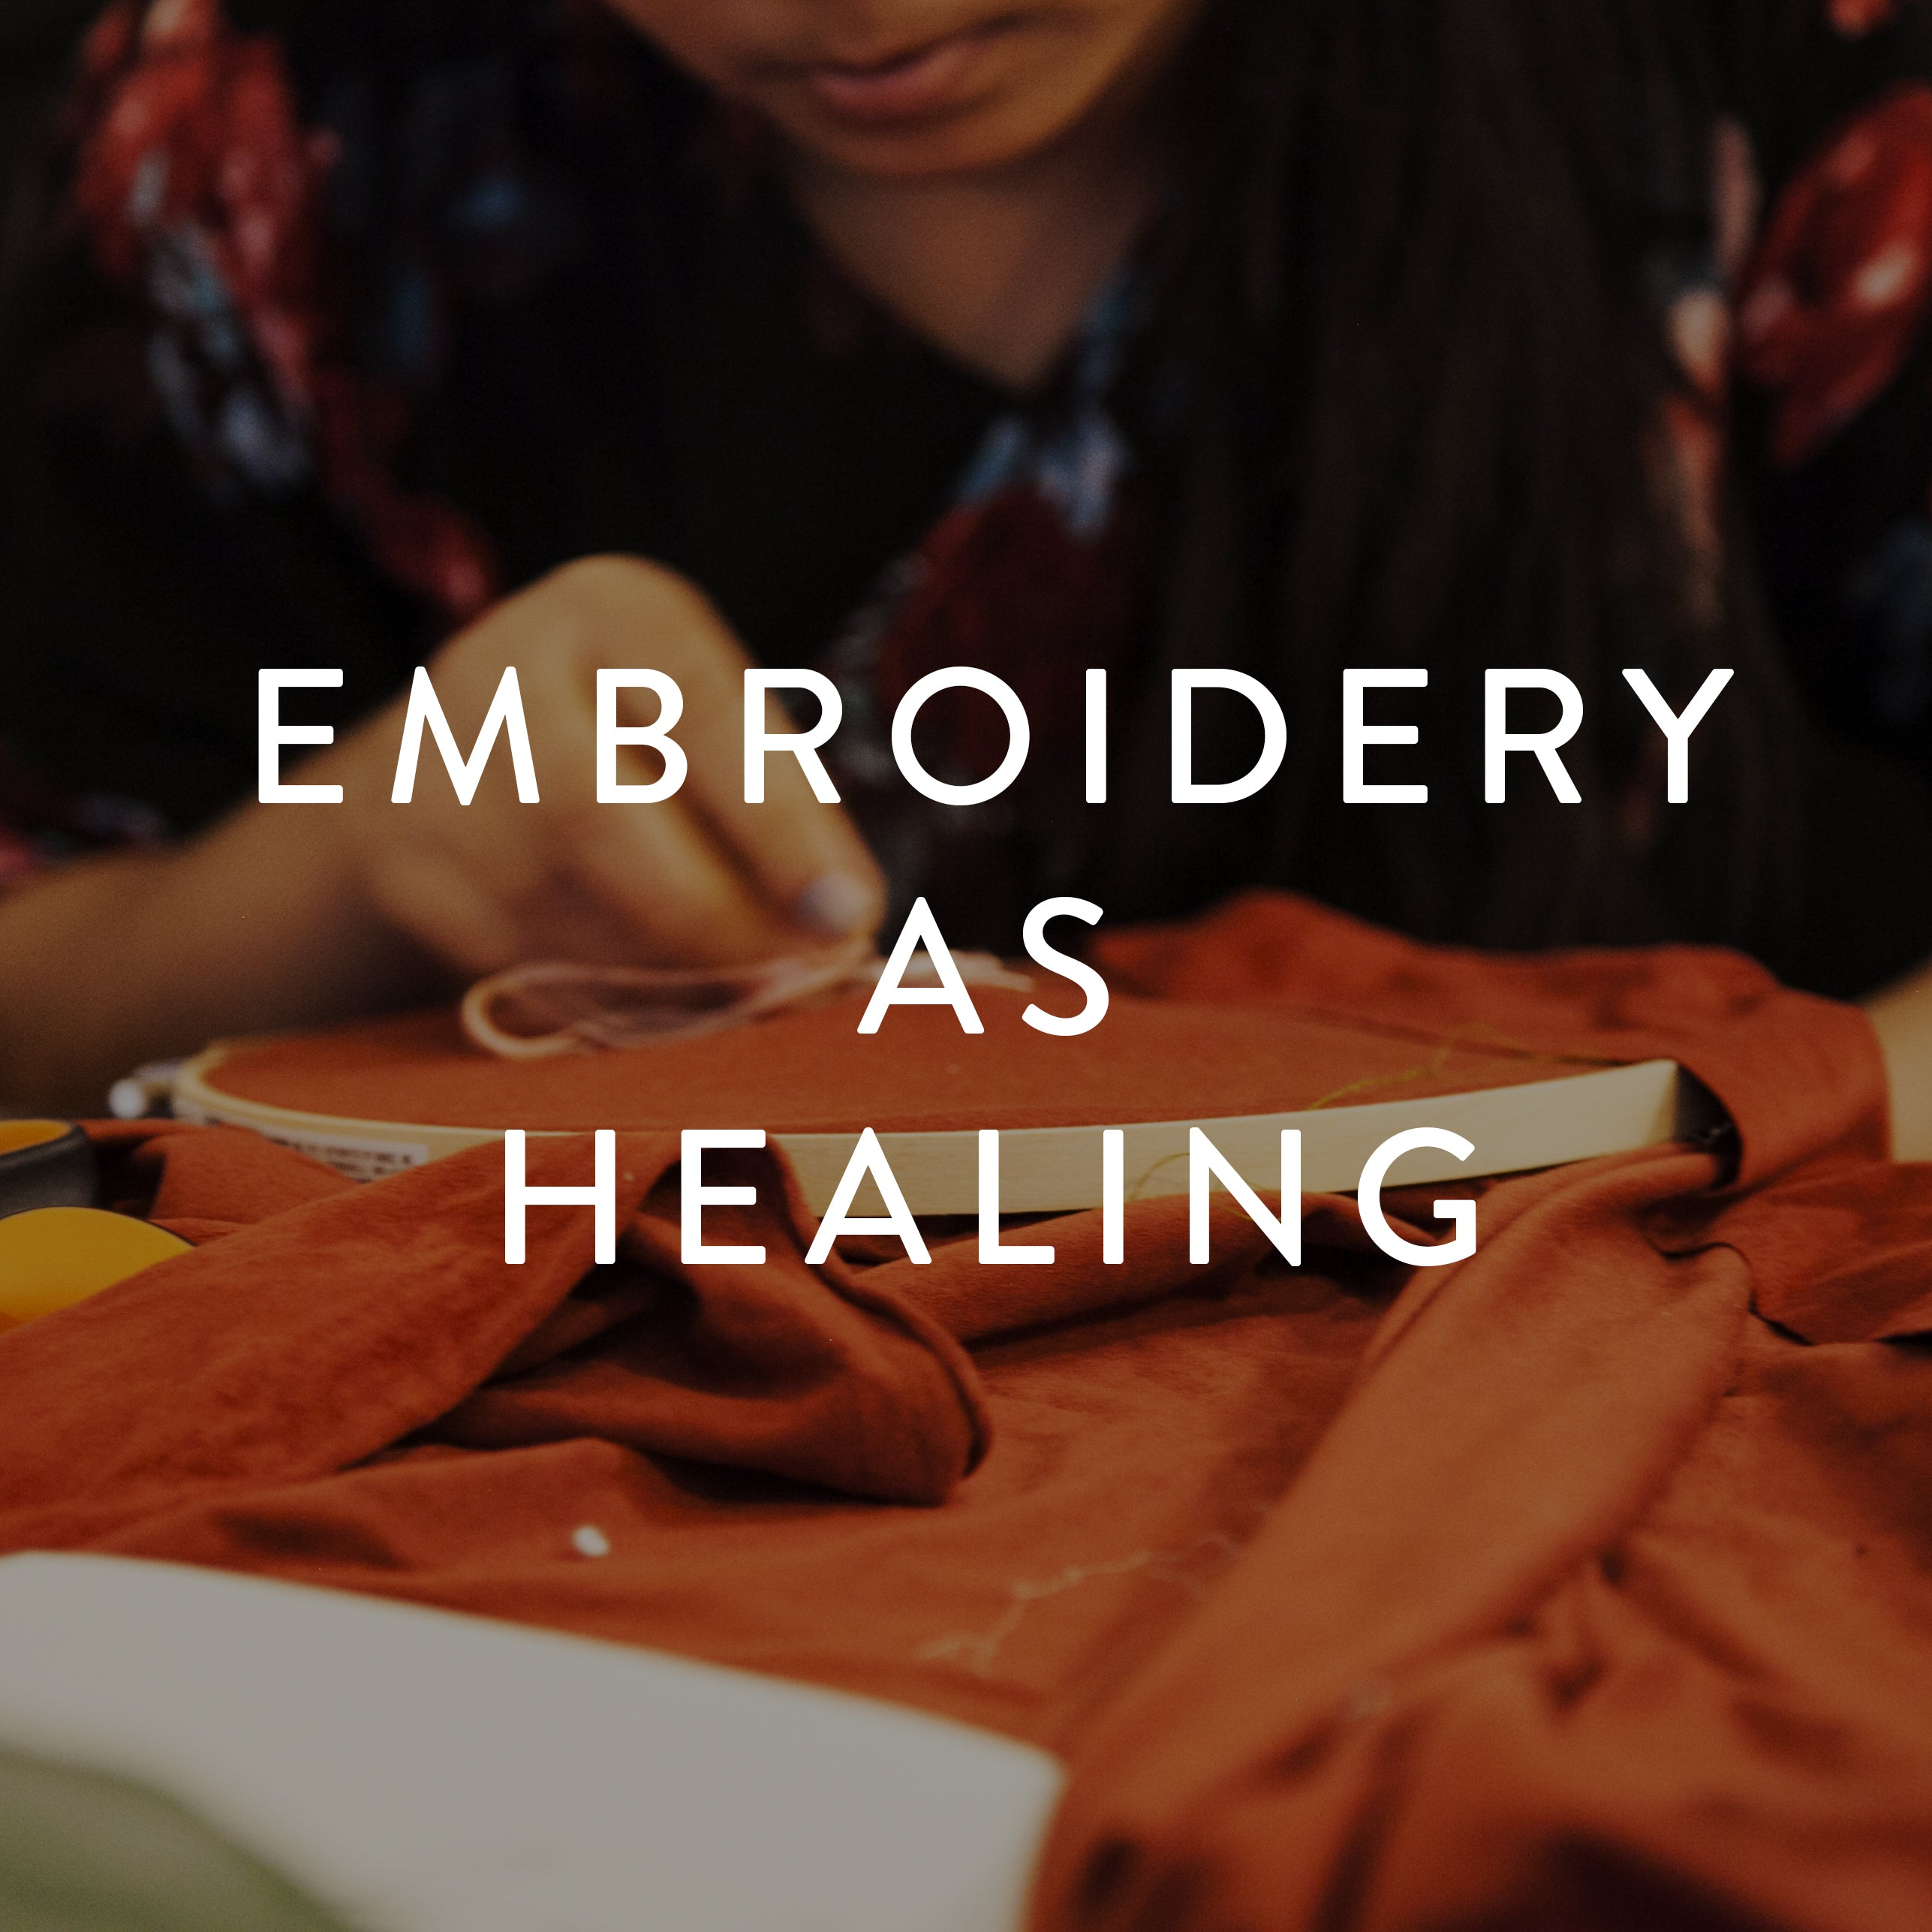 Monday, August 19th -- Embroidery as Healing